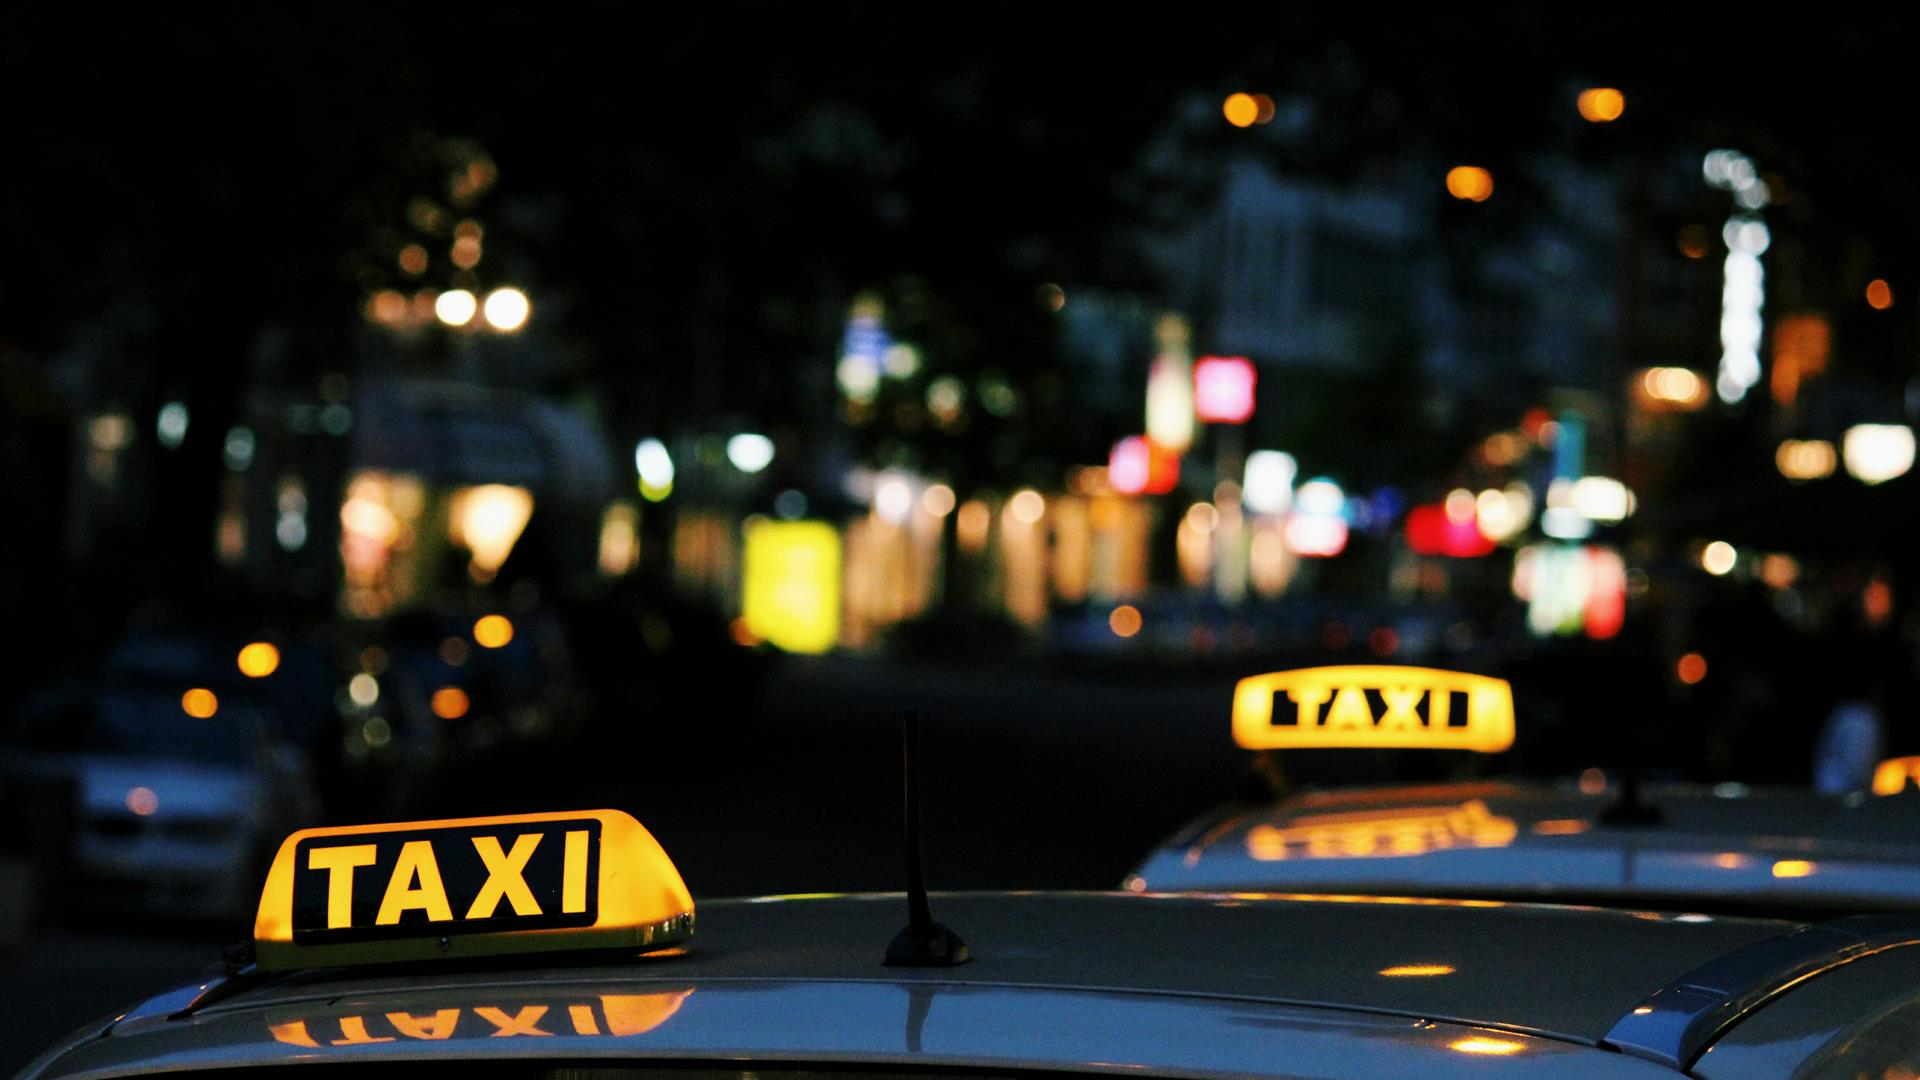 Lexi Ruskell Taxi Unsplash